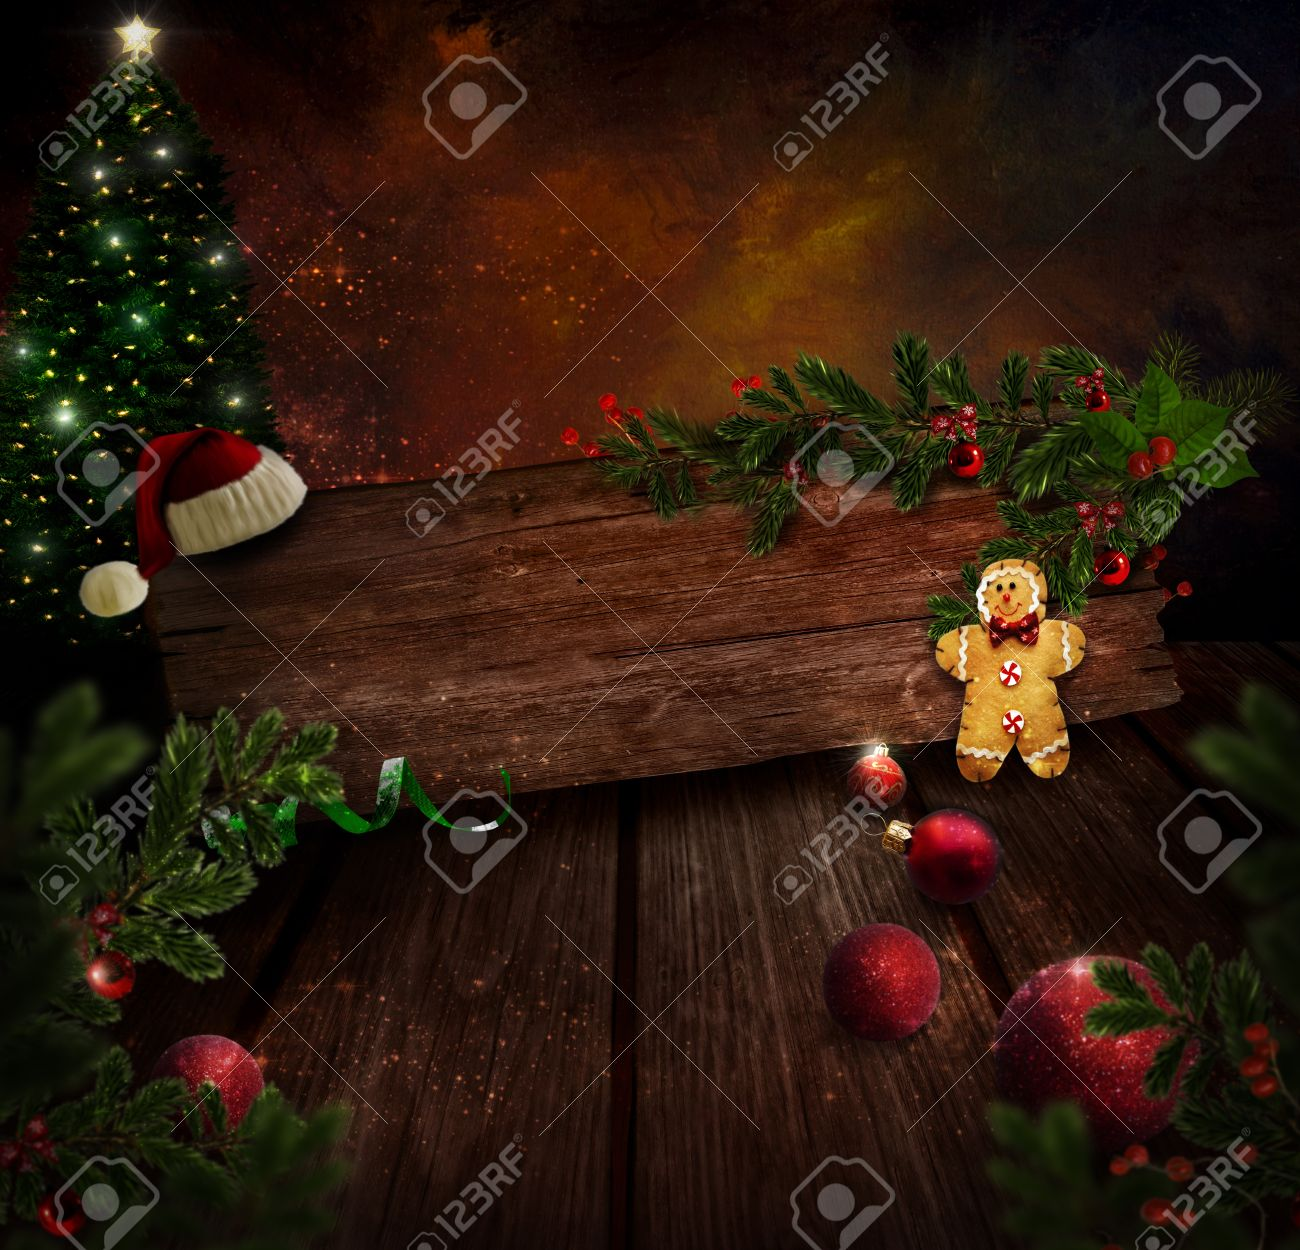 Chritmas design - Night Christmas tree. Background with Glitter Xmas tree in room with art abstract painting. Gingerbread man, Christmas ornaments and Holly. Vintage holiday card with copyspace. Stock Photo - 16061953